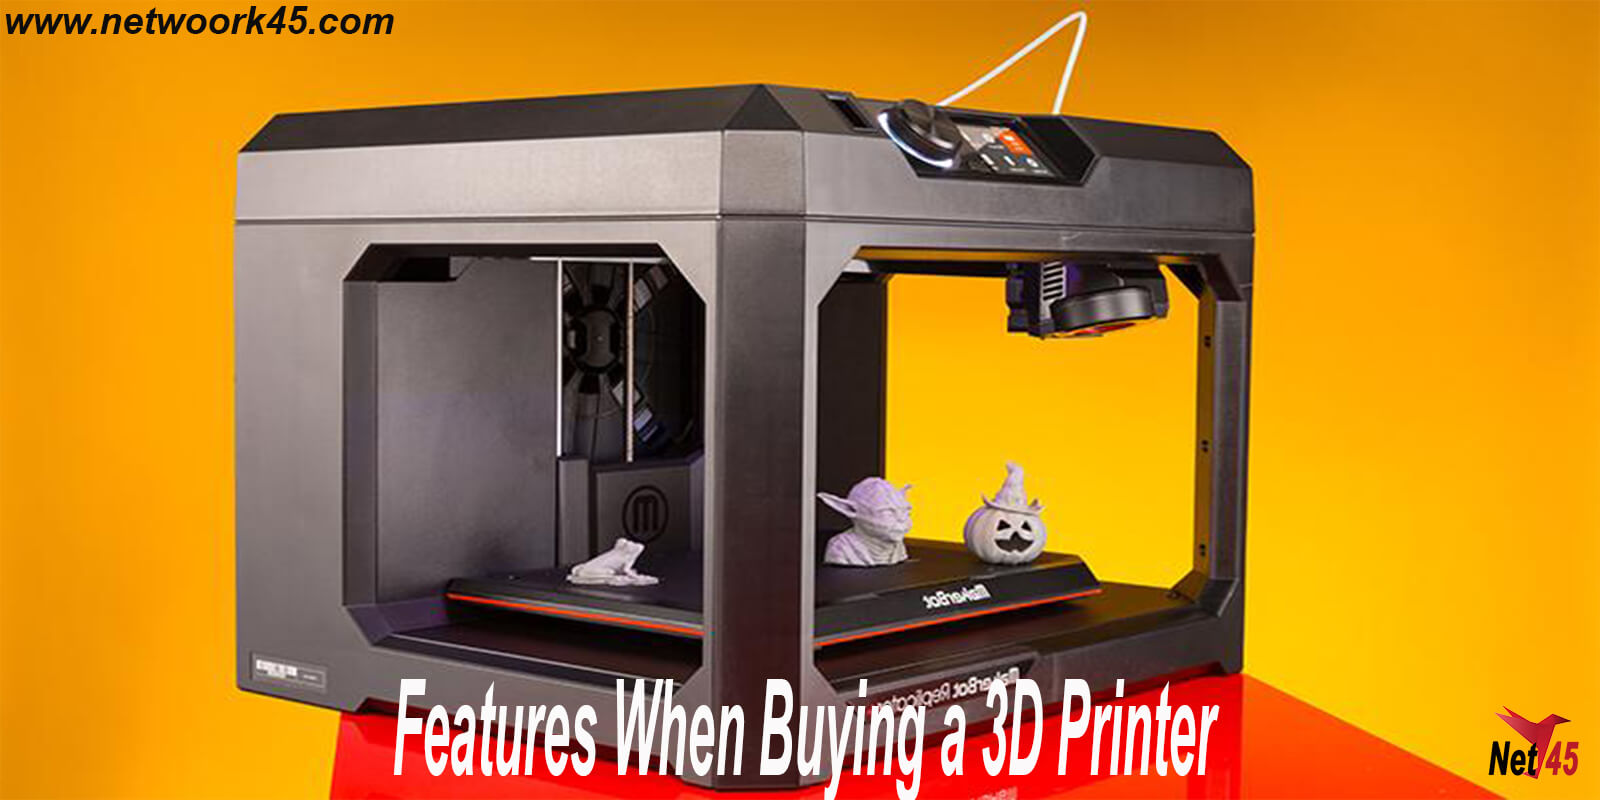 3d printing service company, rapid prototyping print, best 3d printing comp, best 3d printing comp, commercial 3d printer reviews